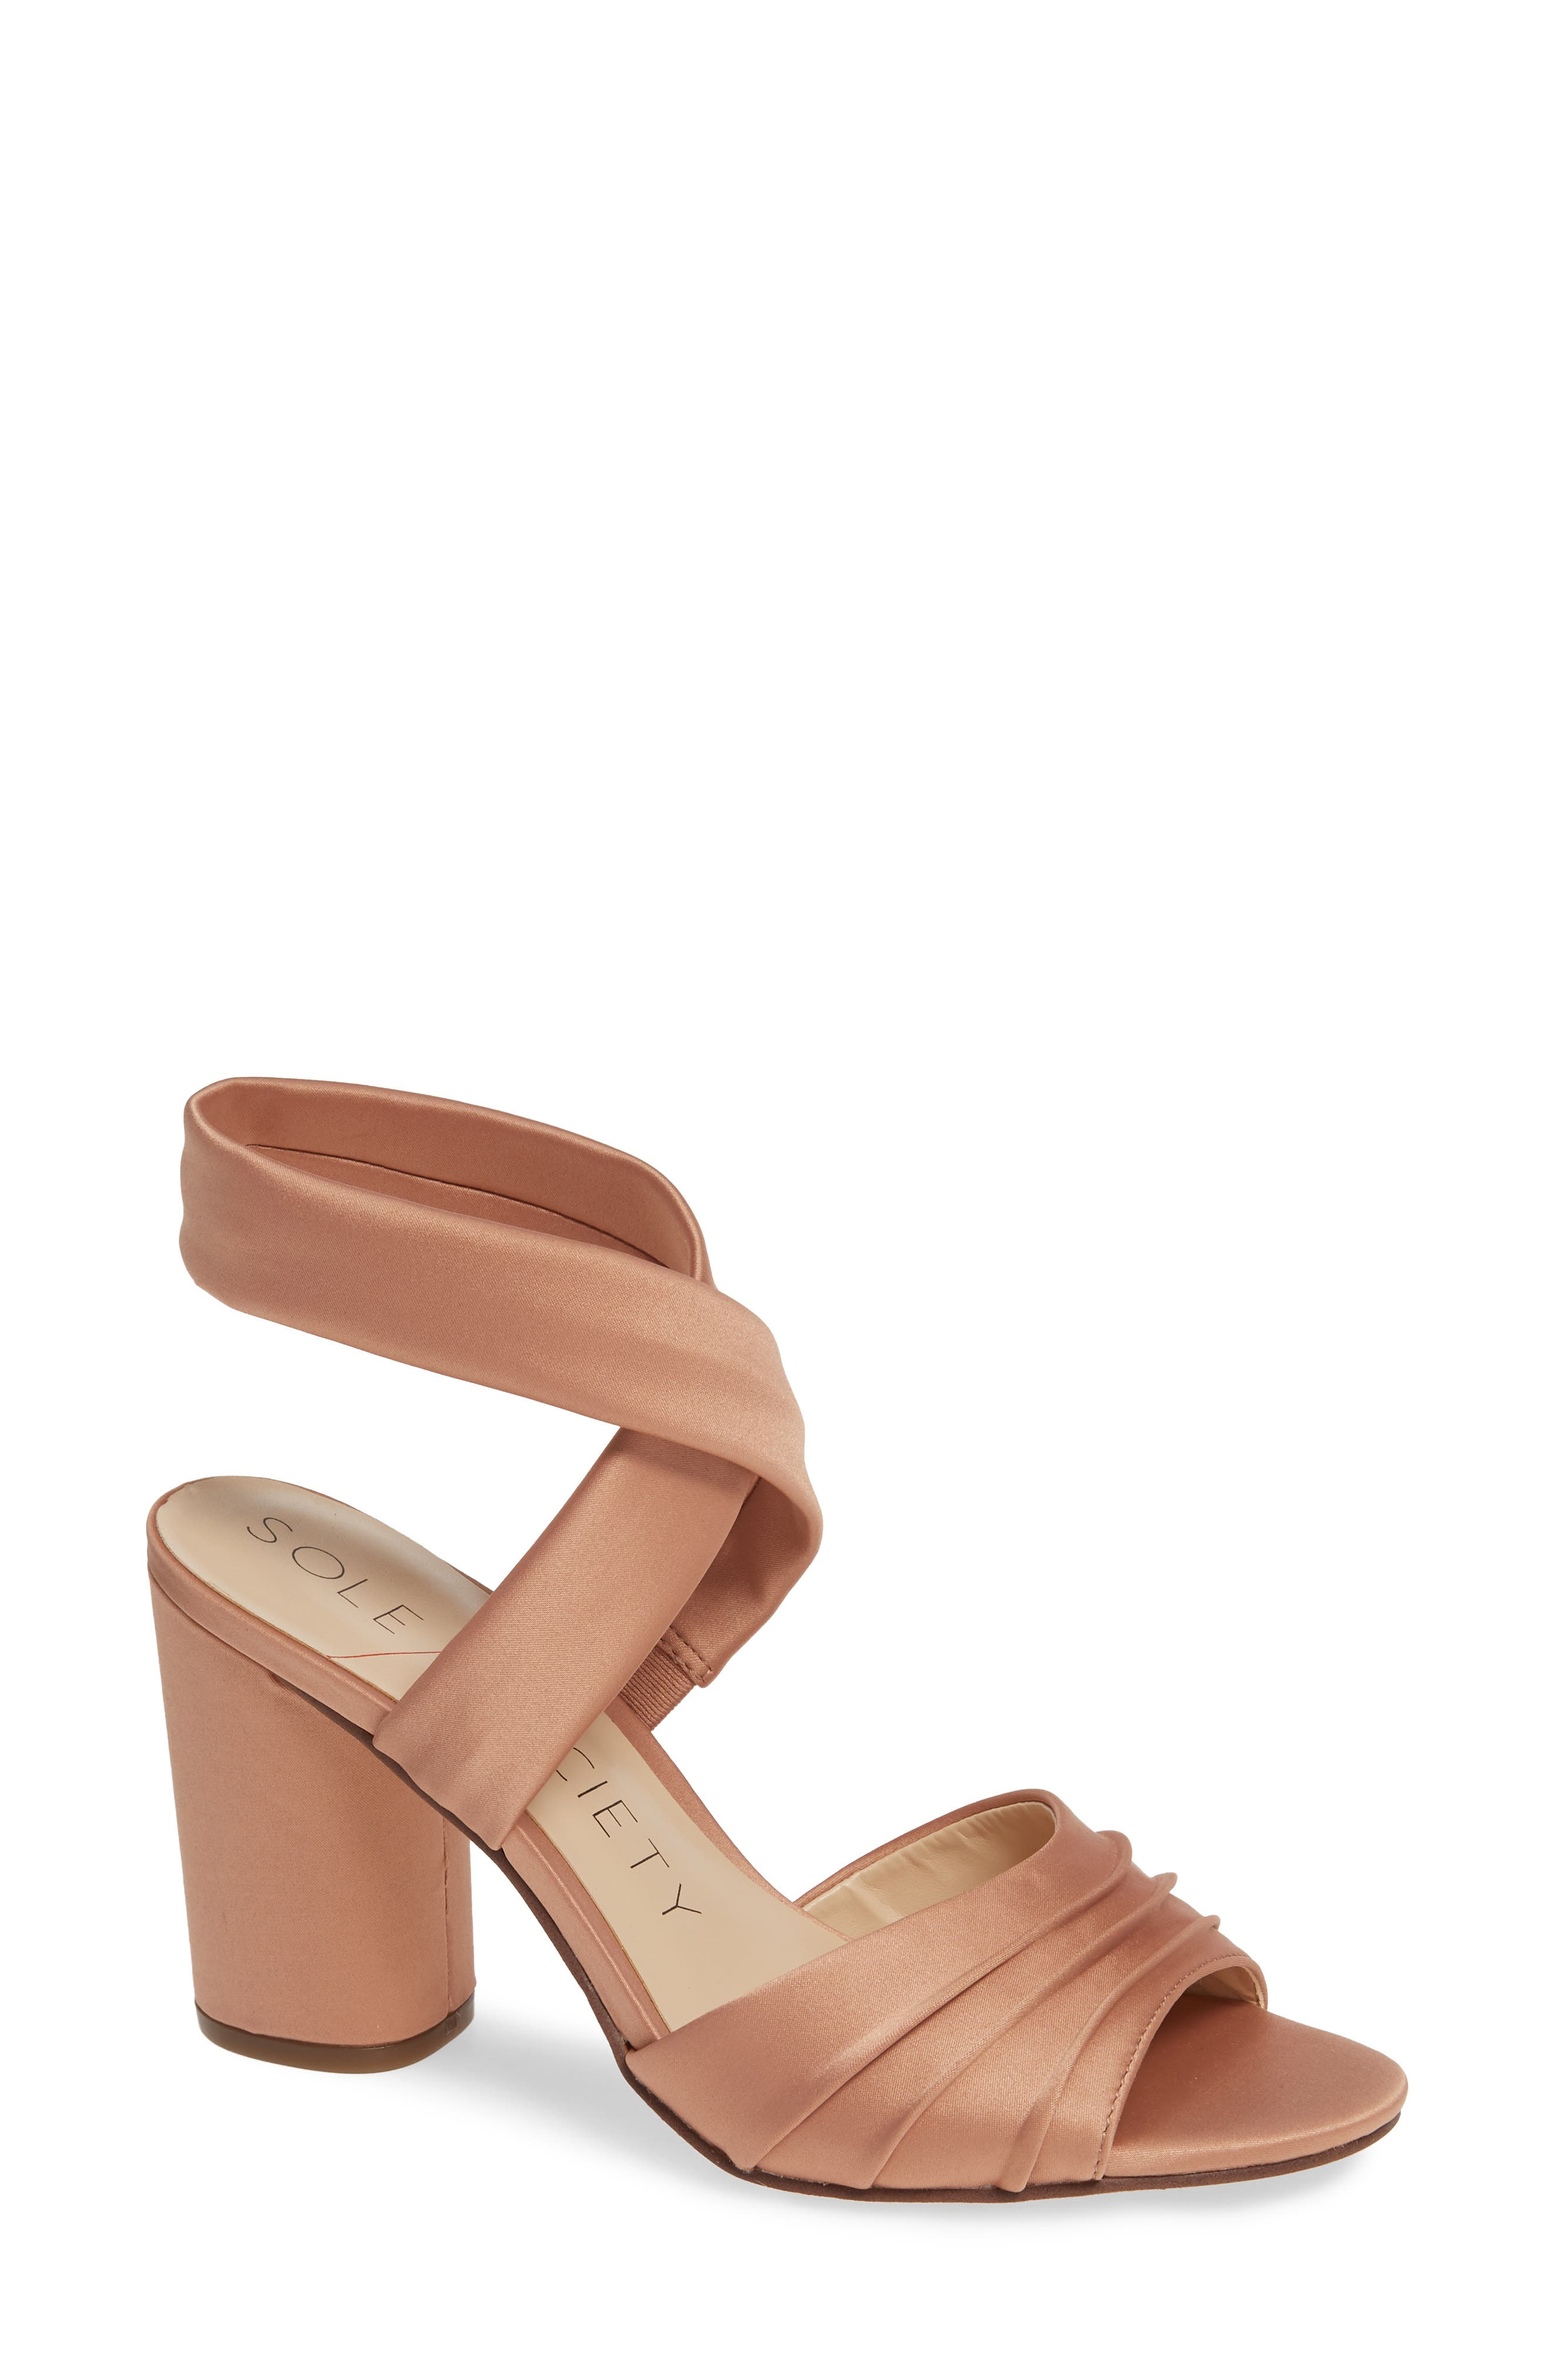 Sole Society Selbie Sandal, Pink